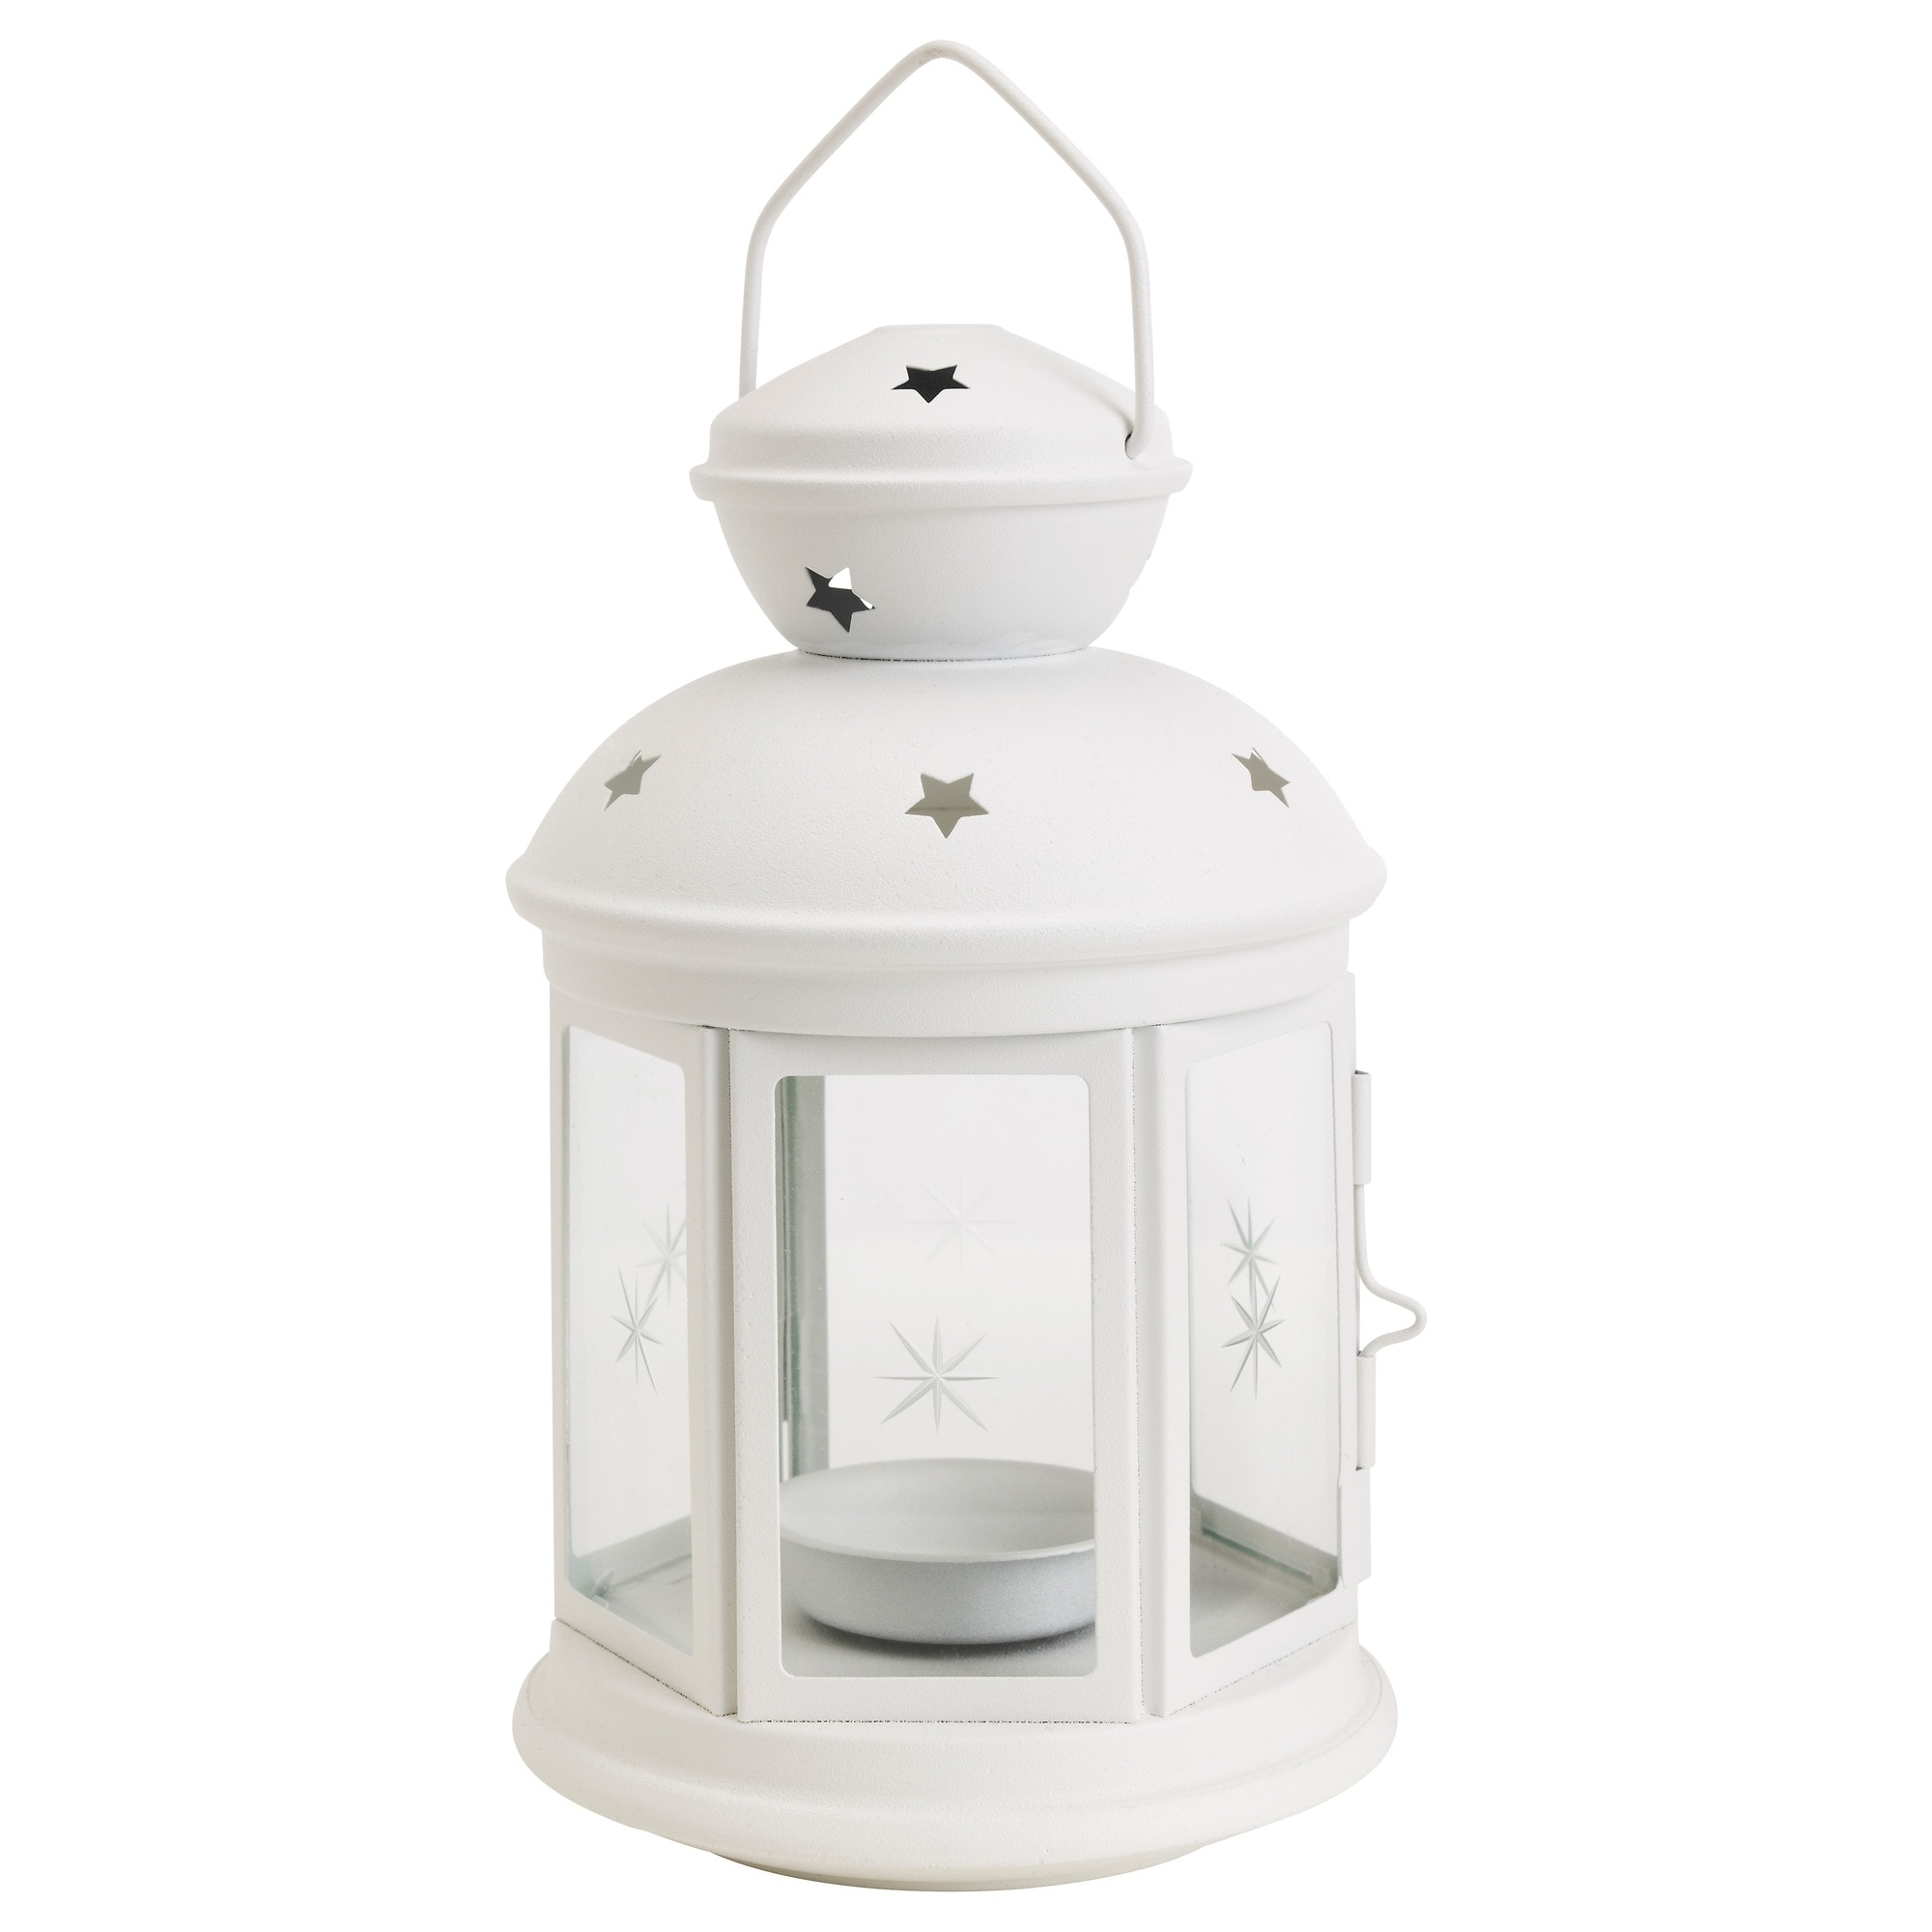 Rotera Lantern For Tealight – Ikea Intended For Most Up To Date Ikea Outdoor Lanterns (View 17 of 20)